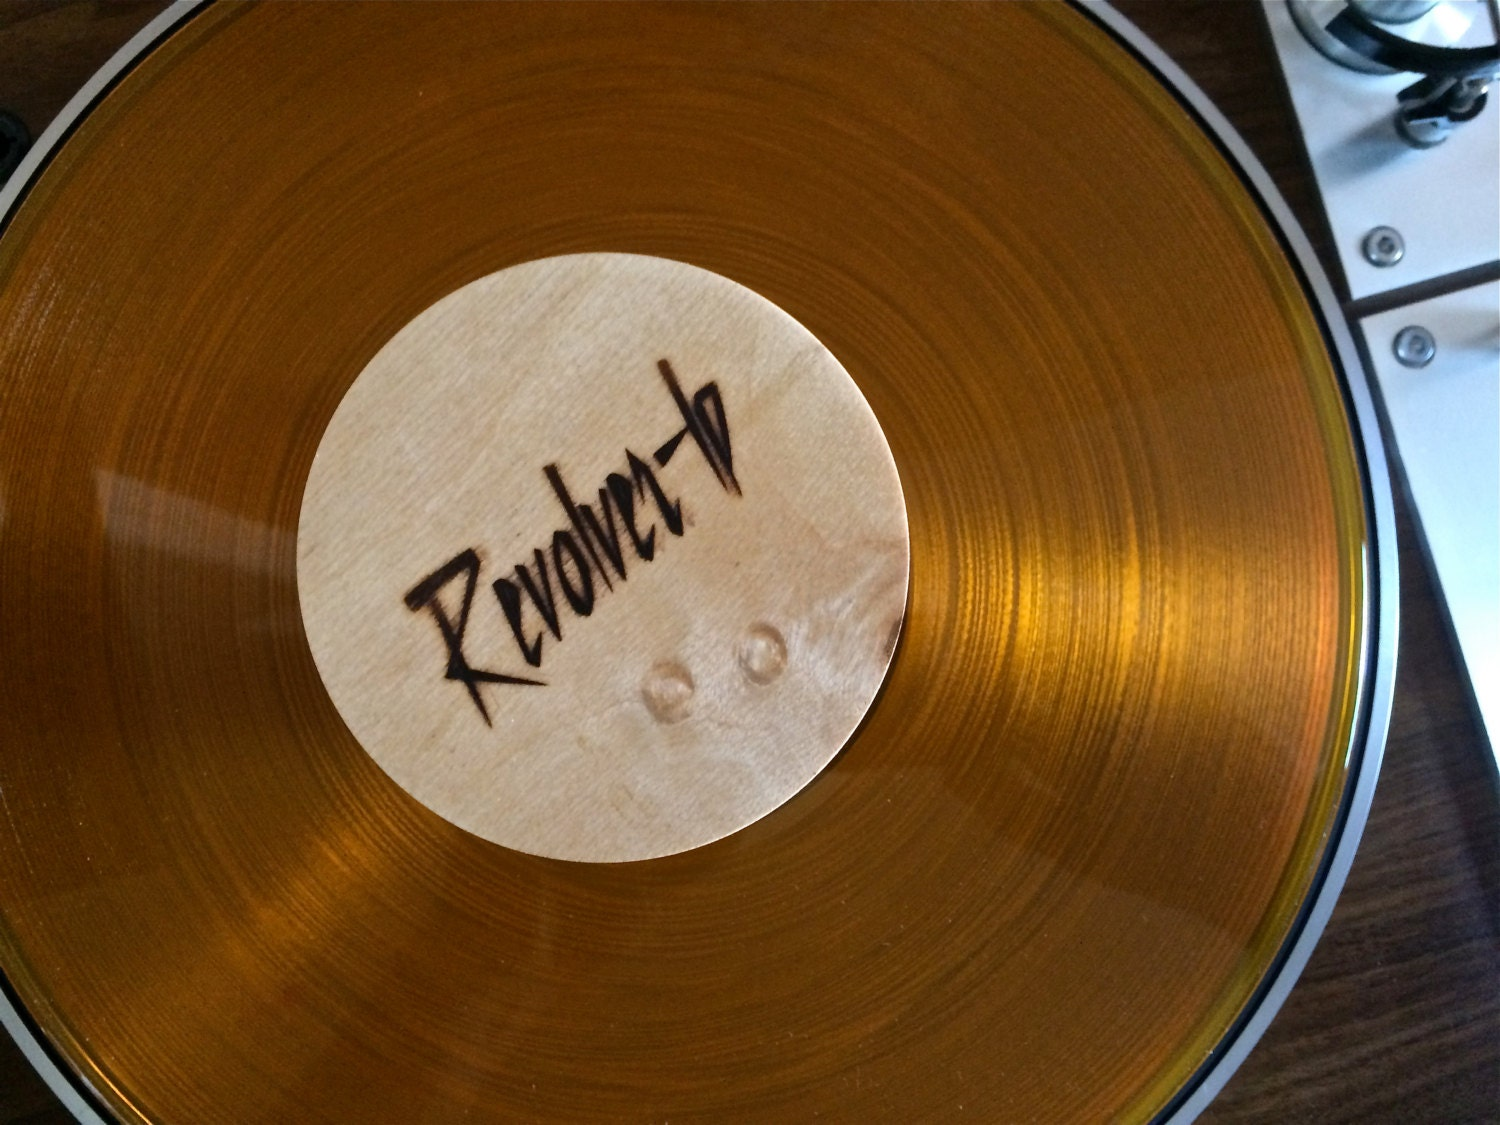 Vinyl Record Weight Hand Crafted Wood Cabinet Makers By